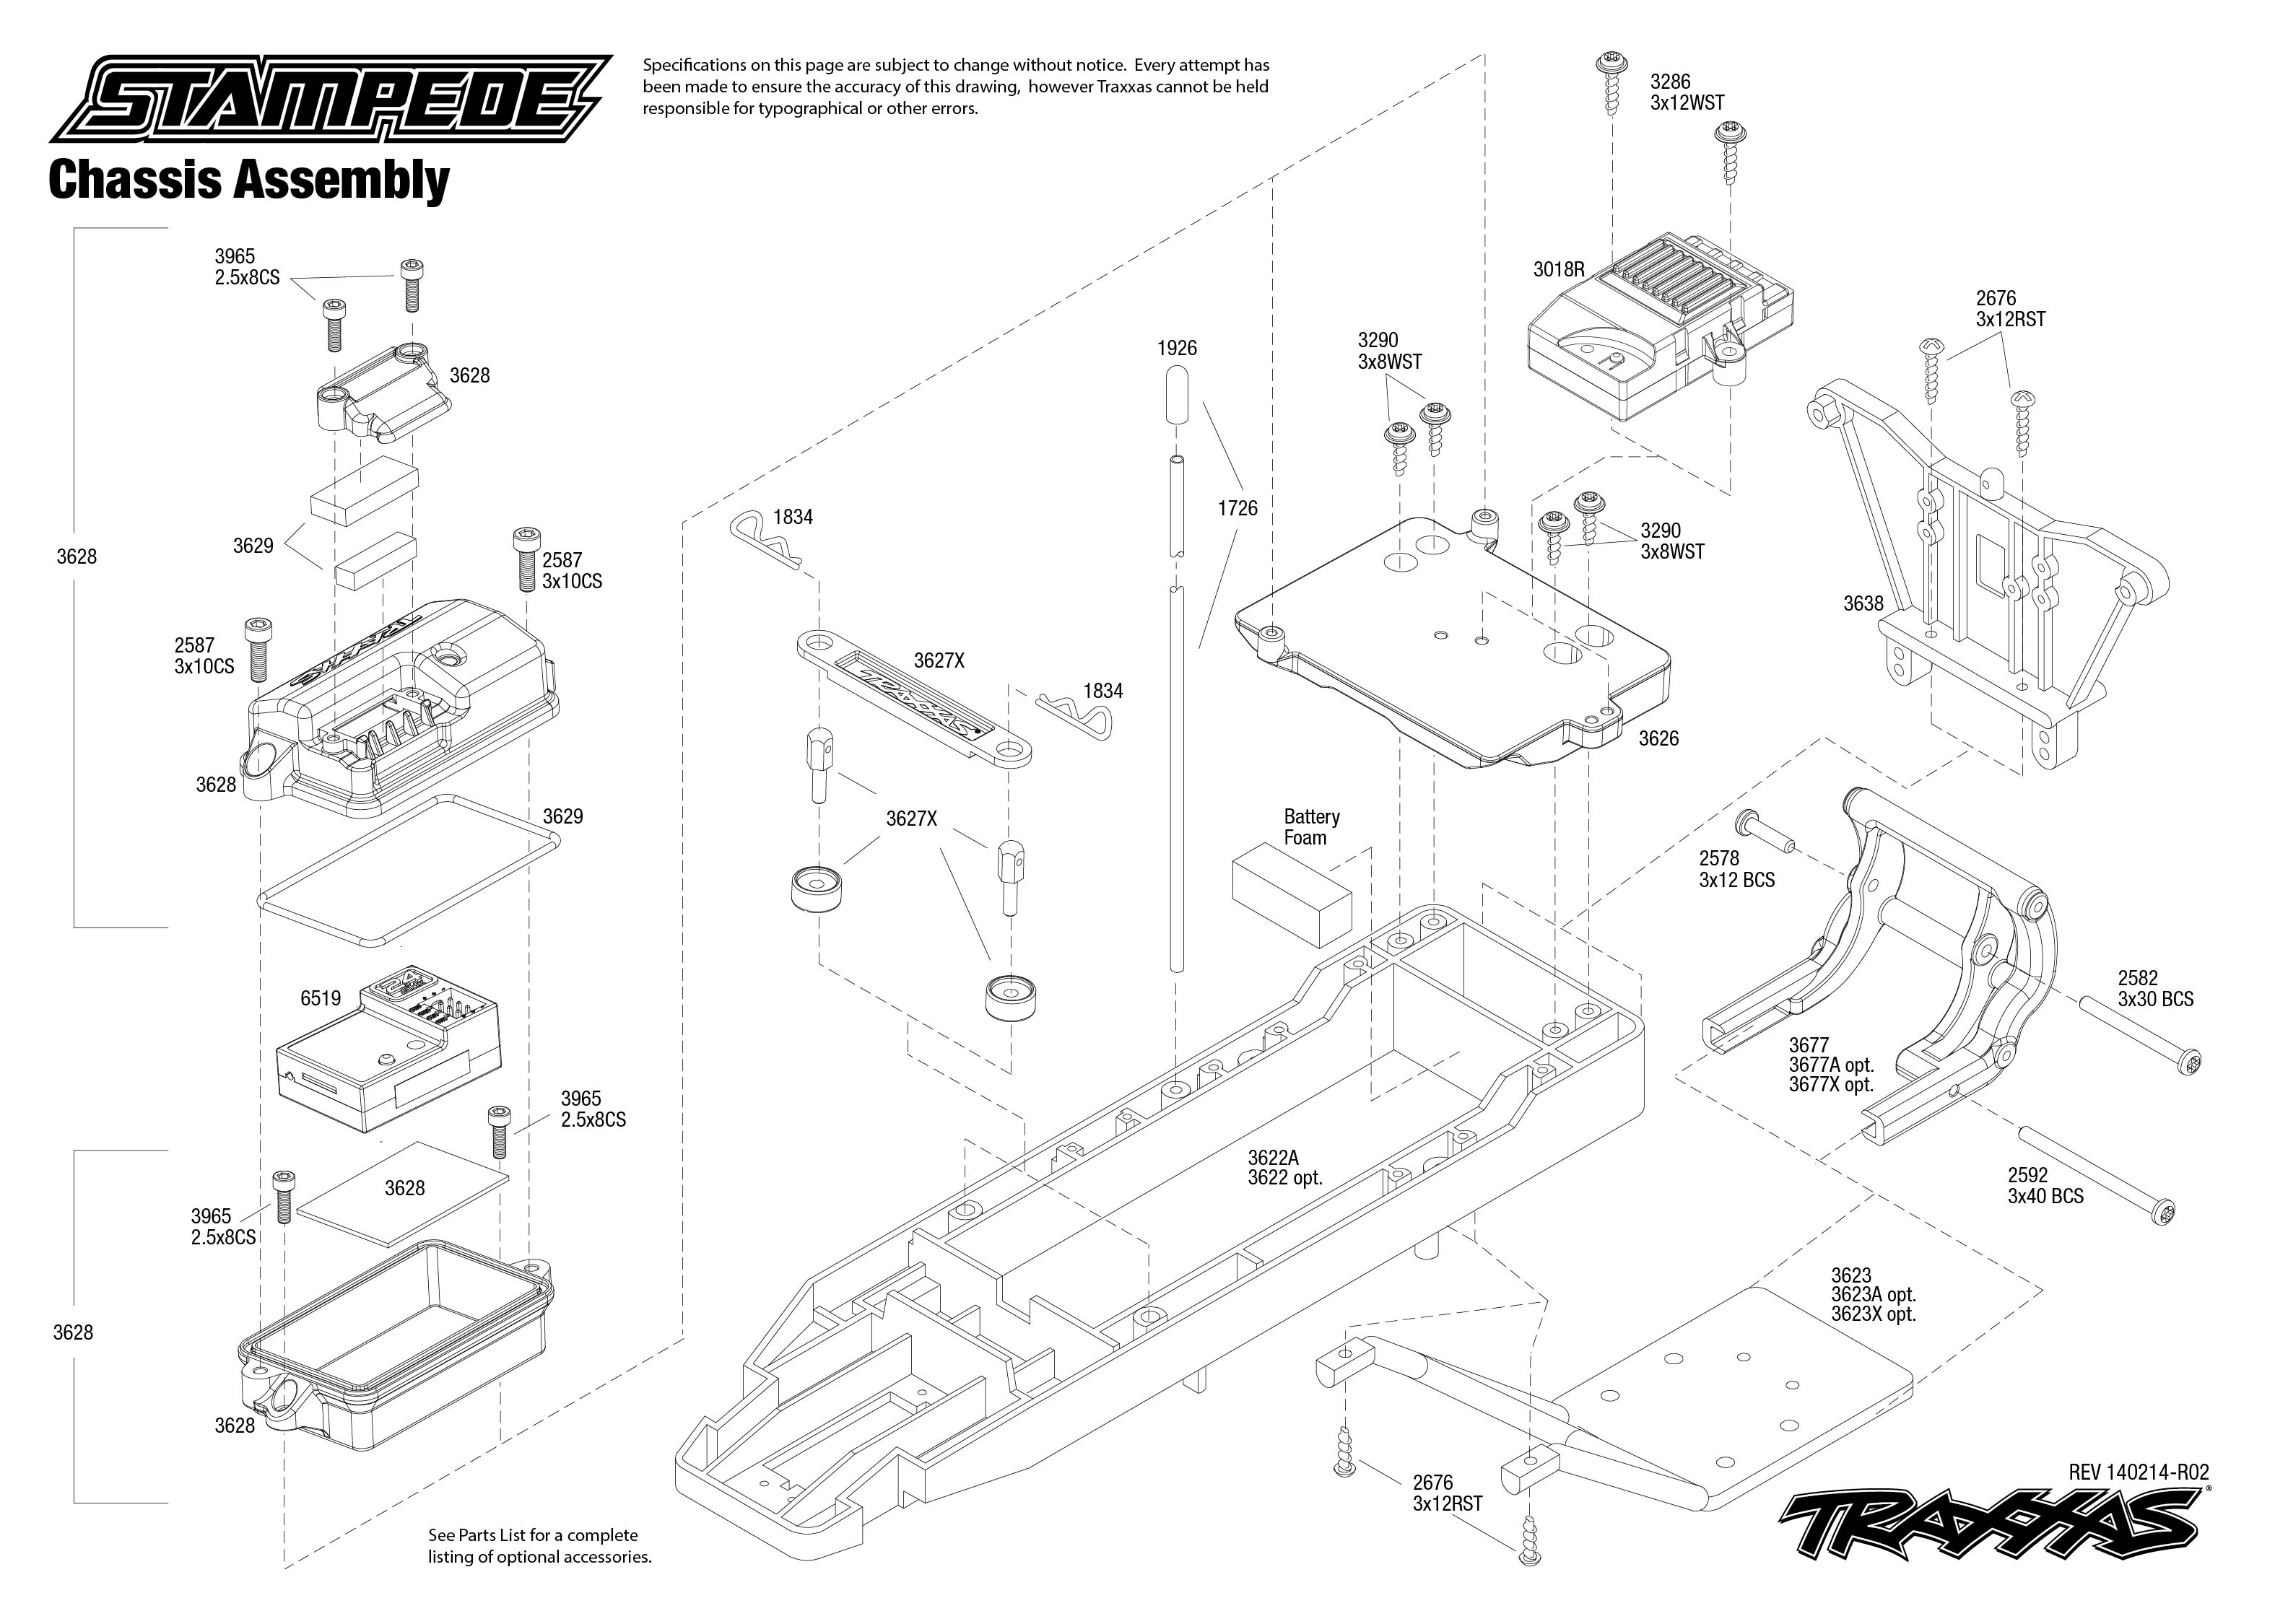 36054_explodedviews_140214_36054 Chassis Assembly stampede (36054) chassis assembly traxxas traxxas tq receiver wiring diagram at alyssarenee.co